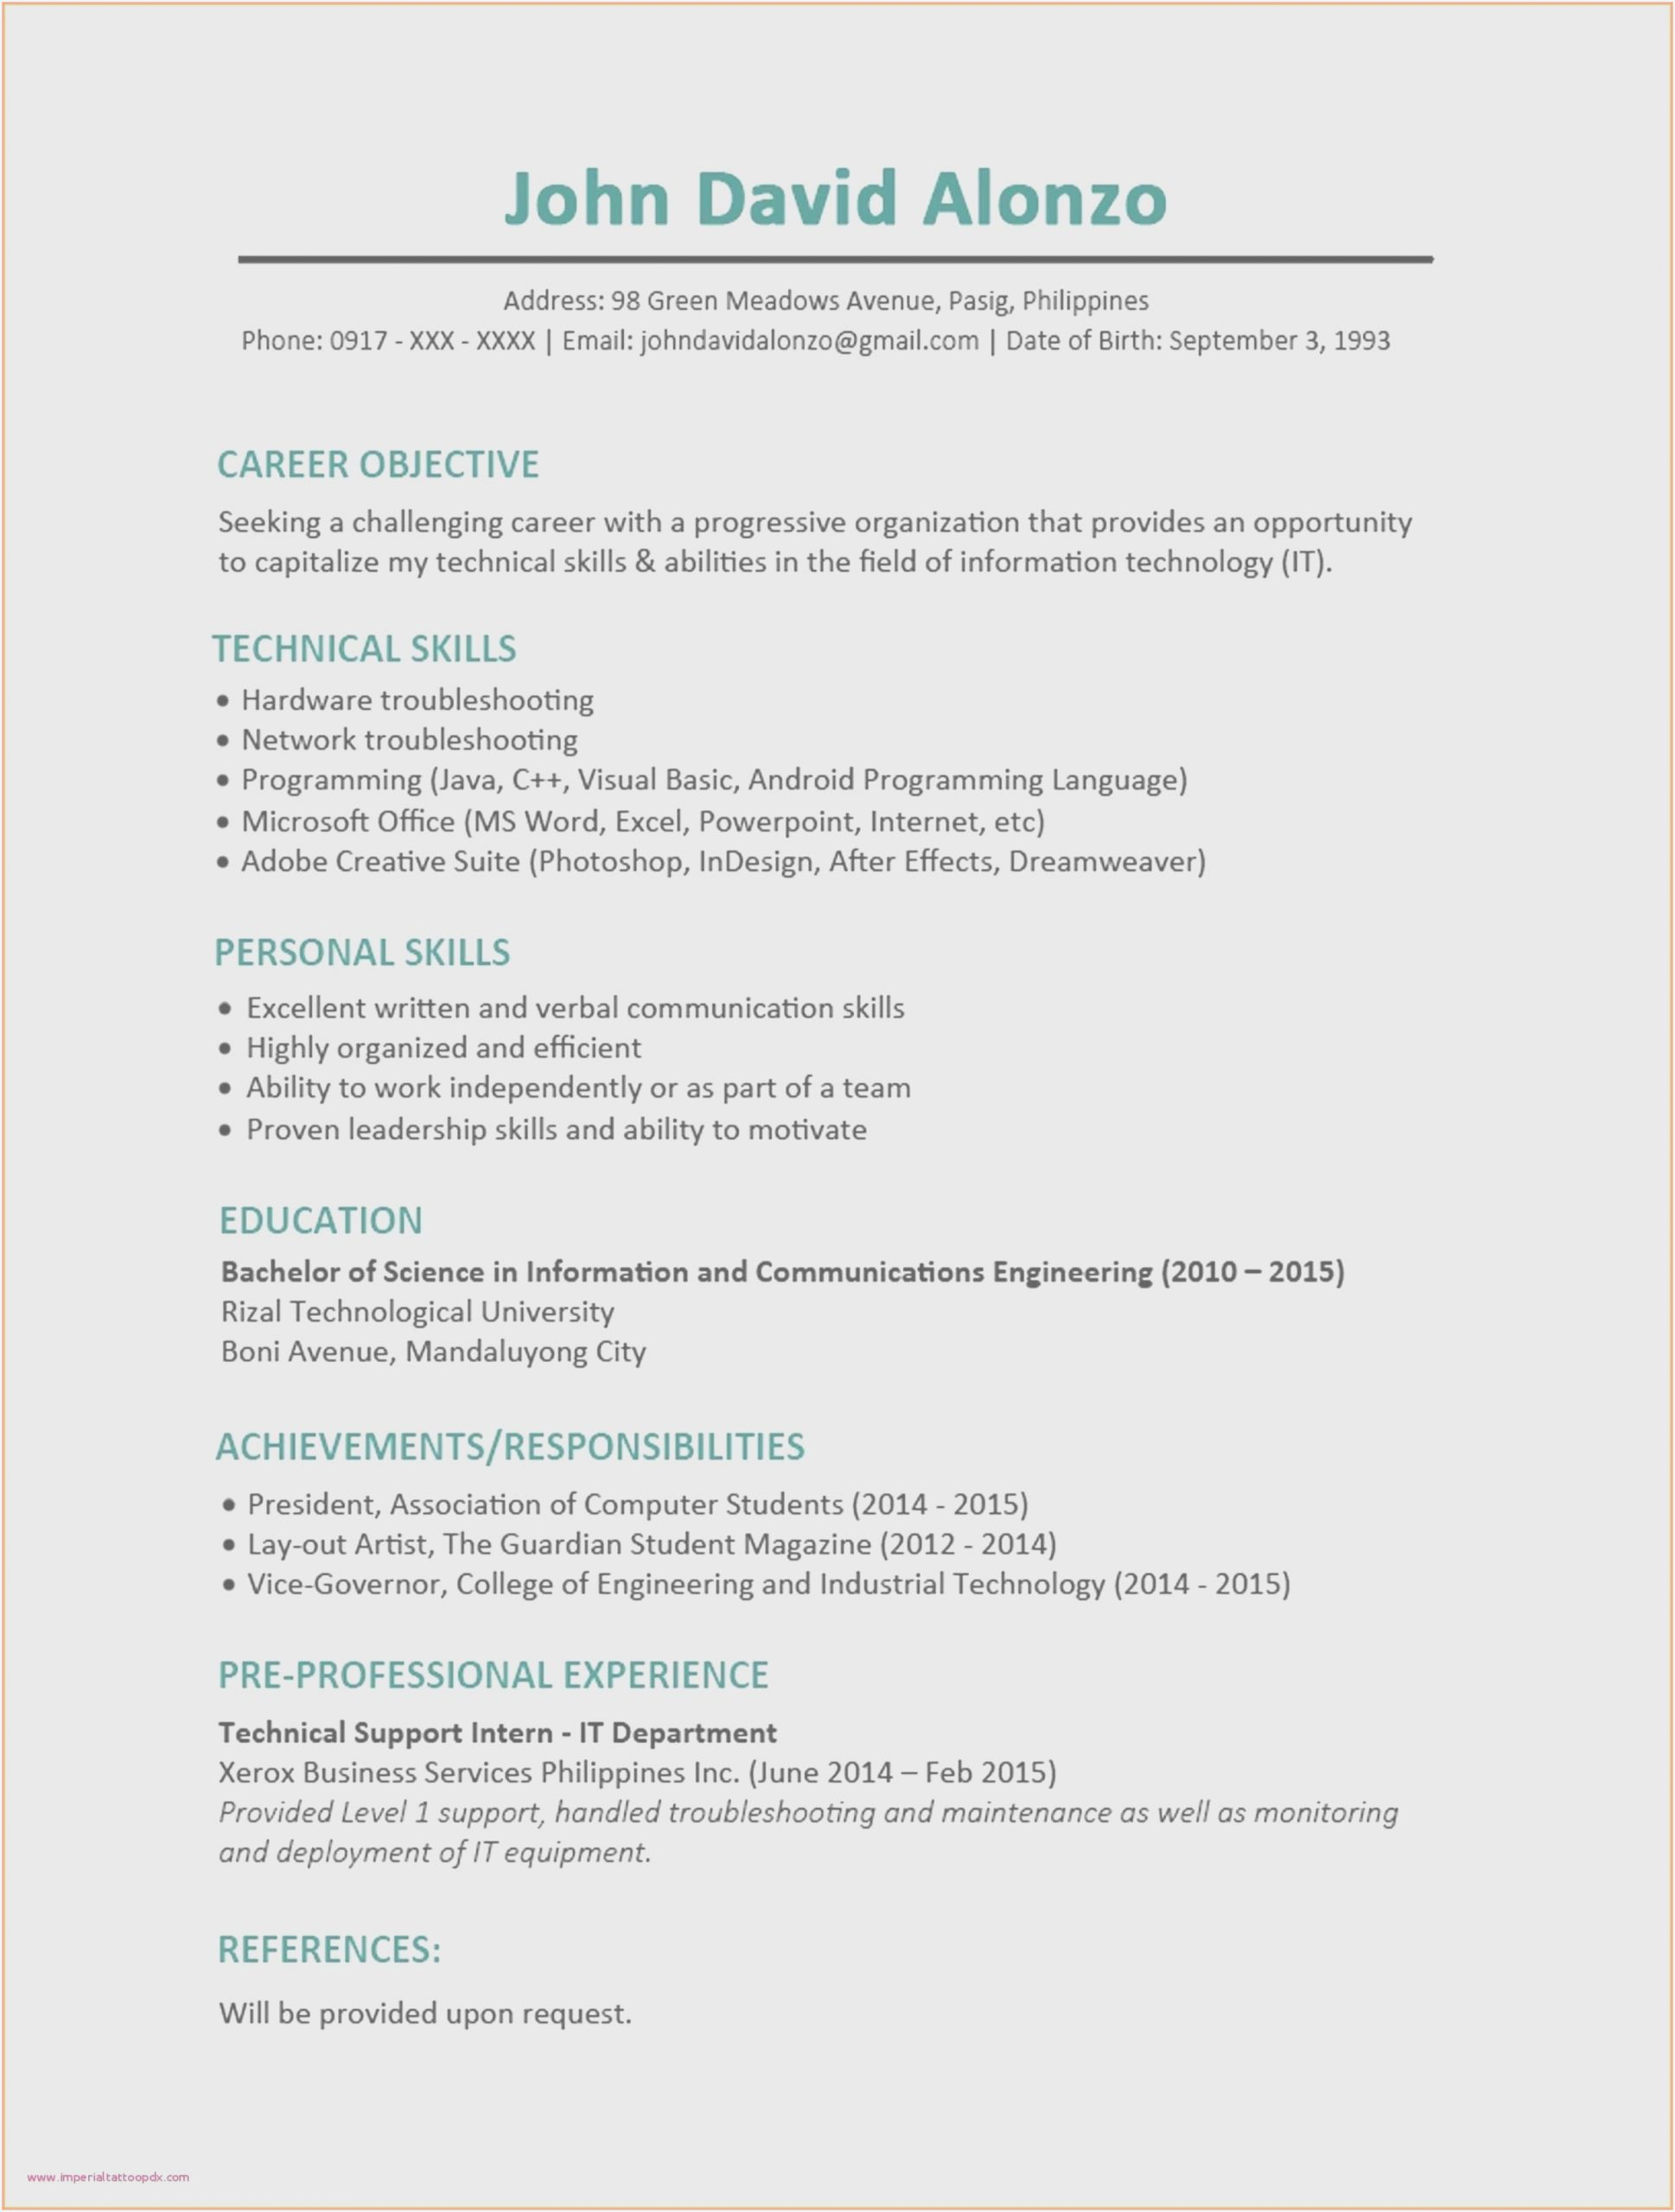 sample resume for electrical engineer fresh graduate computer in scaled hvac technician Resume Sample Resume For Computer Engineer Fresh Graduate